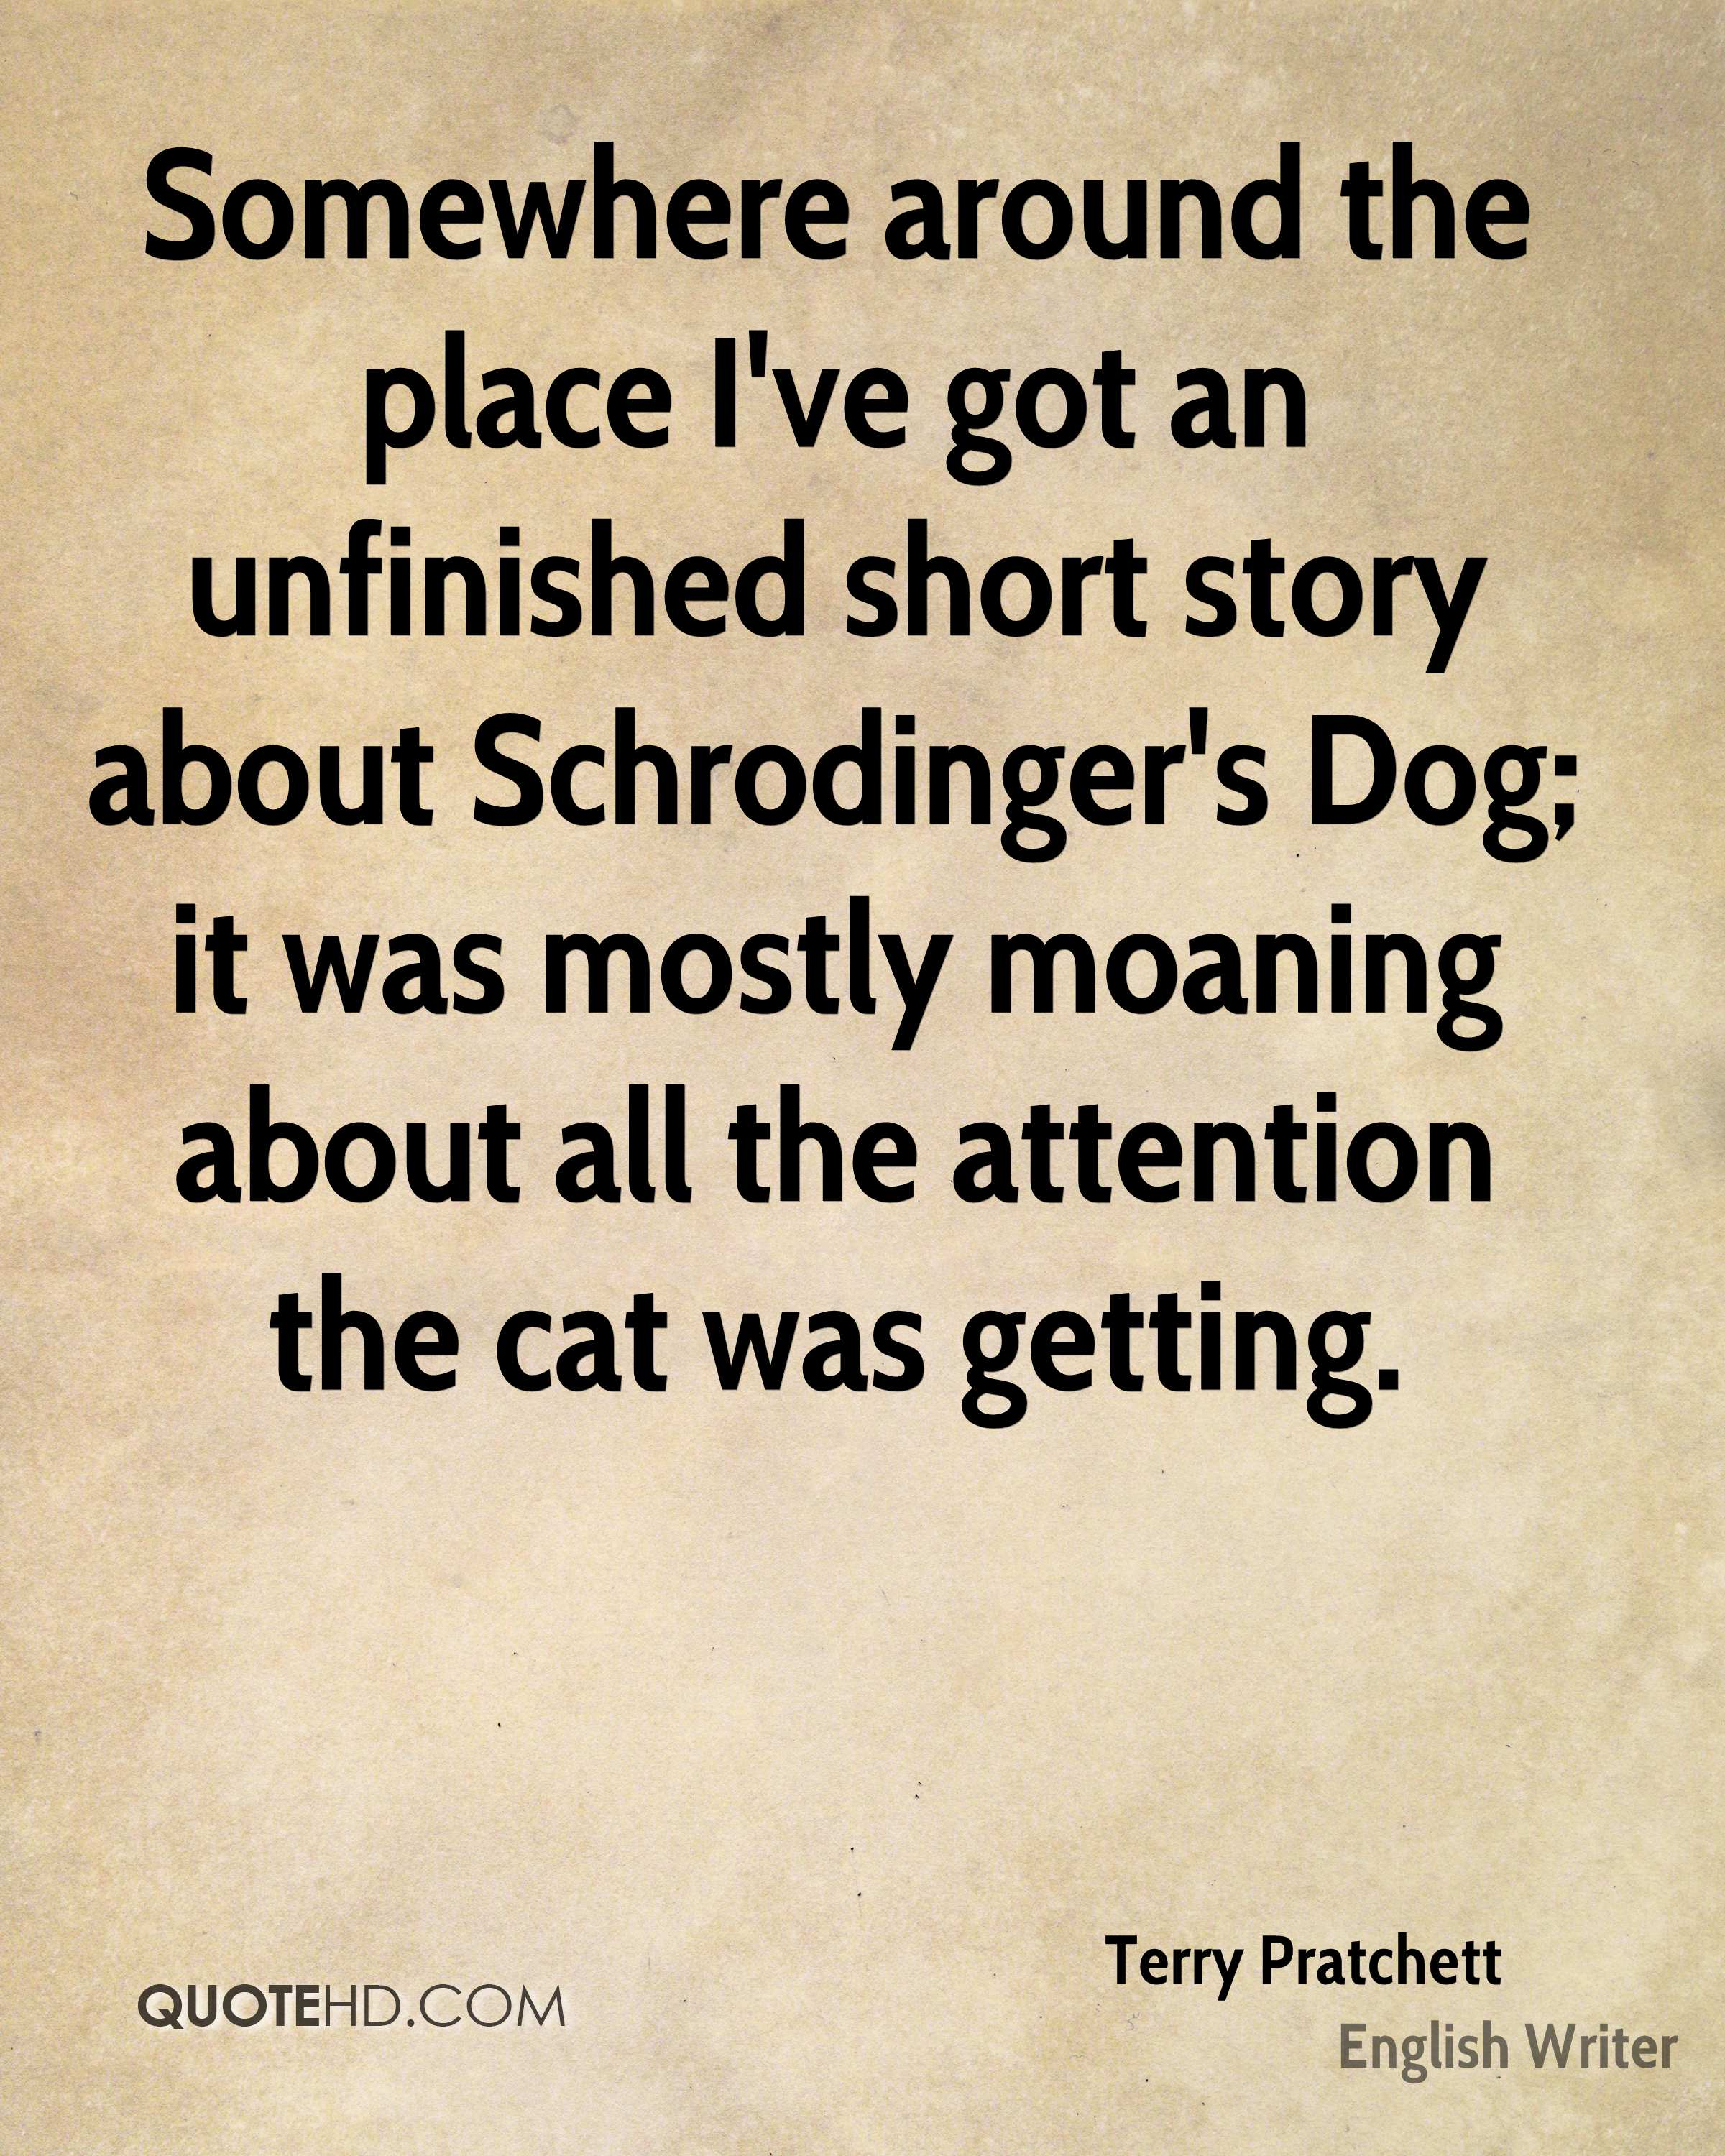 terry-pratchett-quote-somewhere-around-the-place-ive-got-an ...